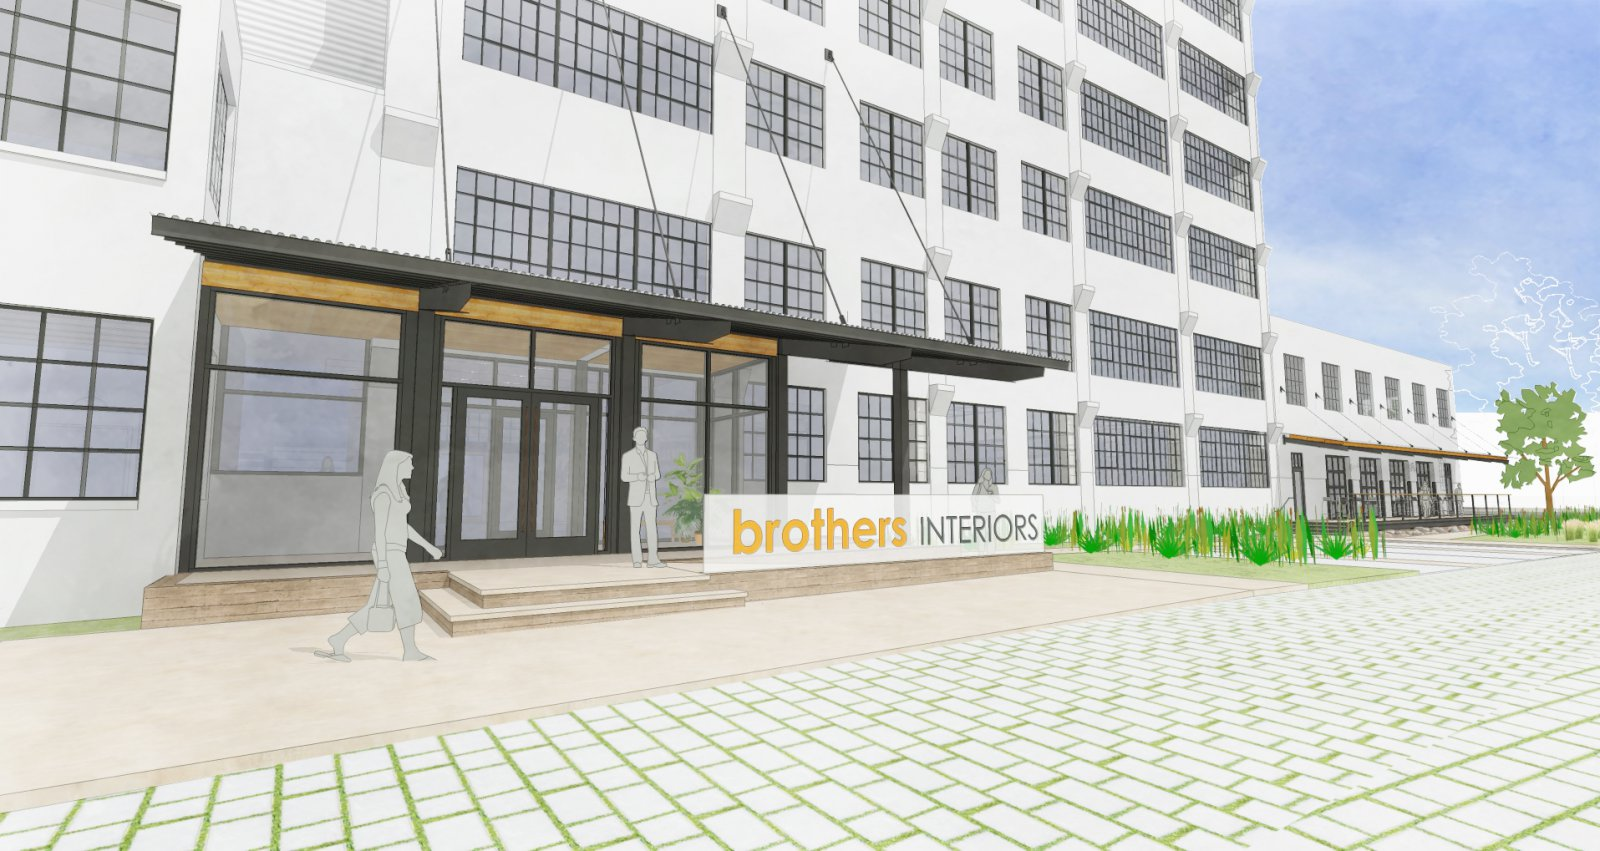 Brothers Interiors rendering